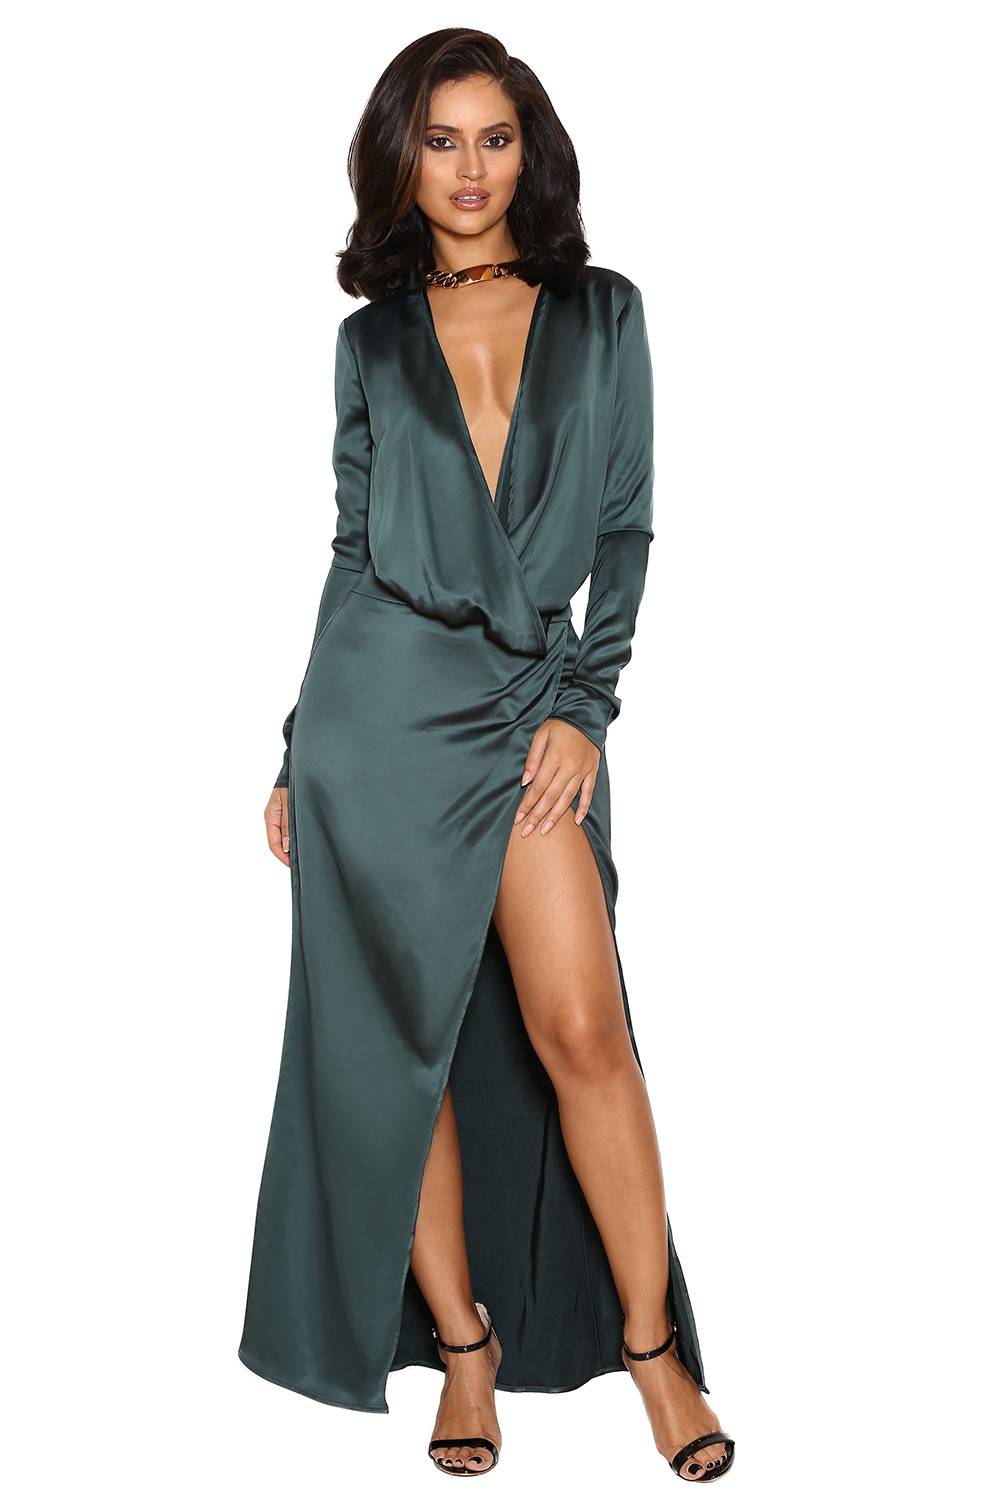 Clothing : Max Dresses : 'Serafina' Teal Draped Maxi Dress